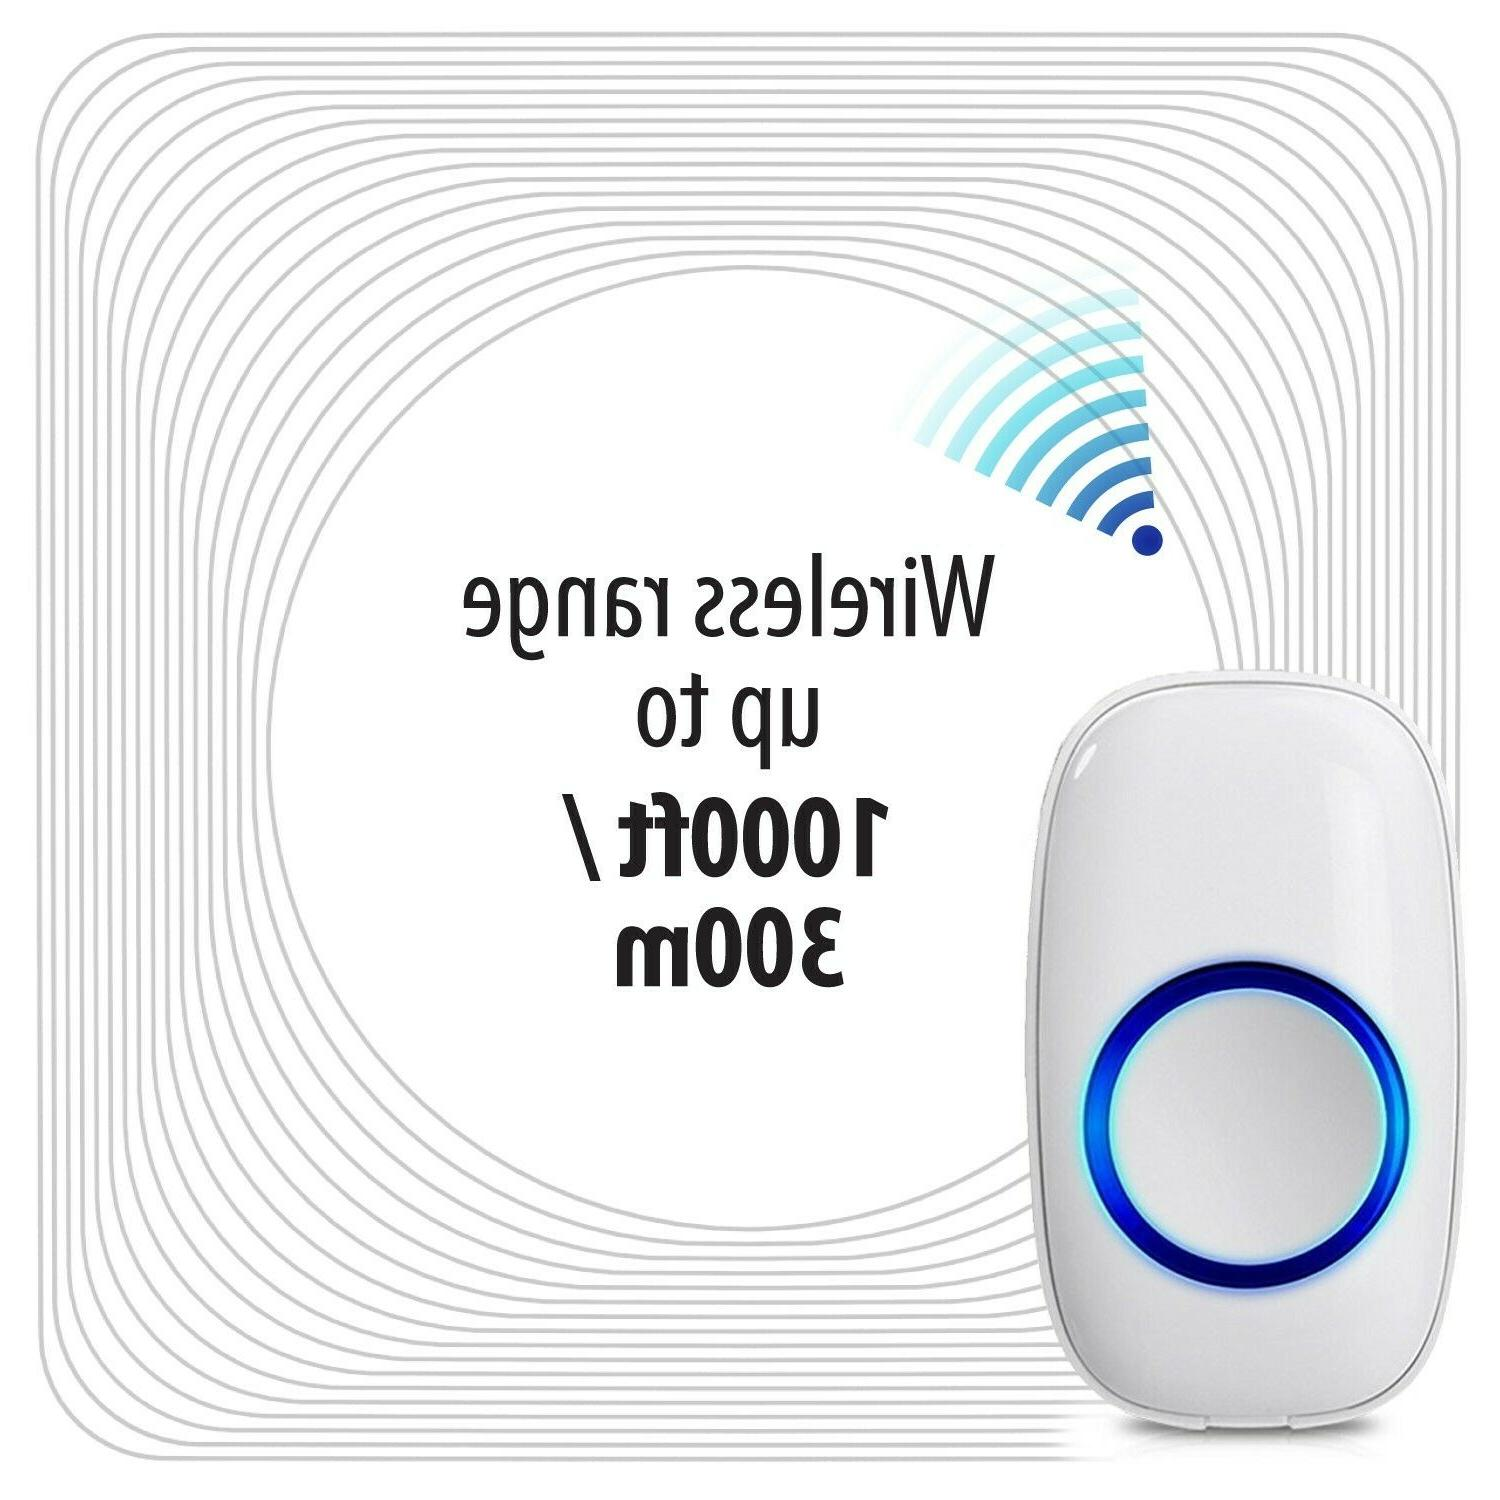 1000FT Water Resistant Doorbell Chime Transmitter Remote